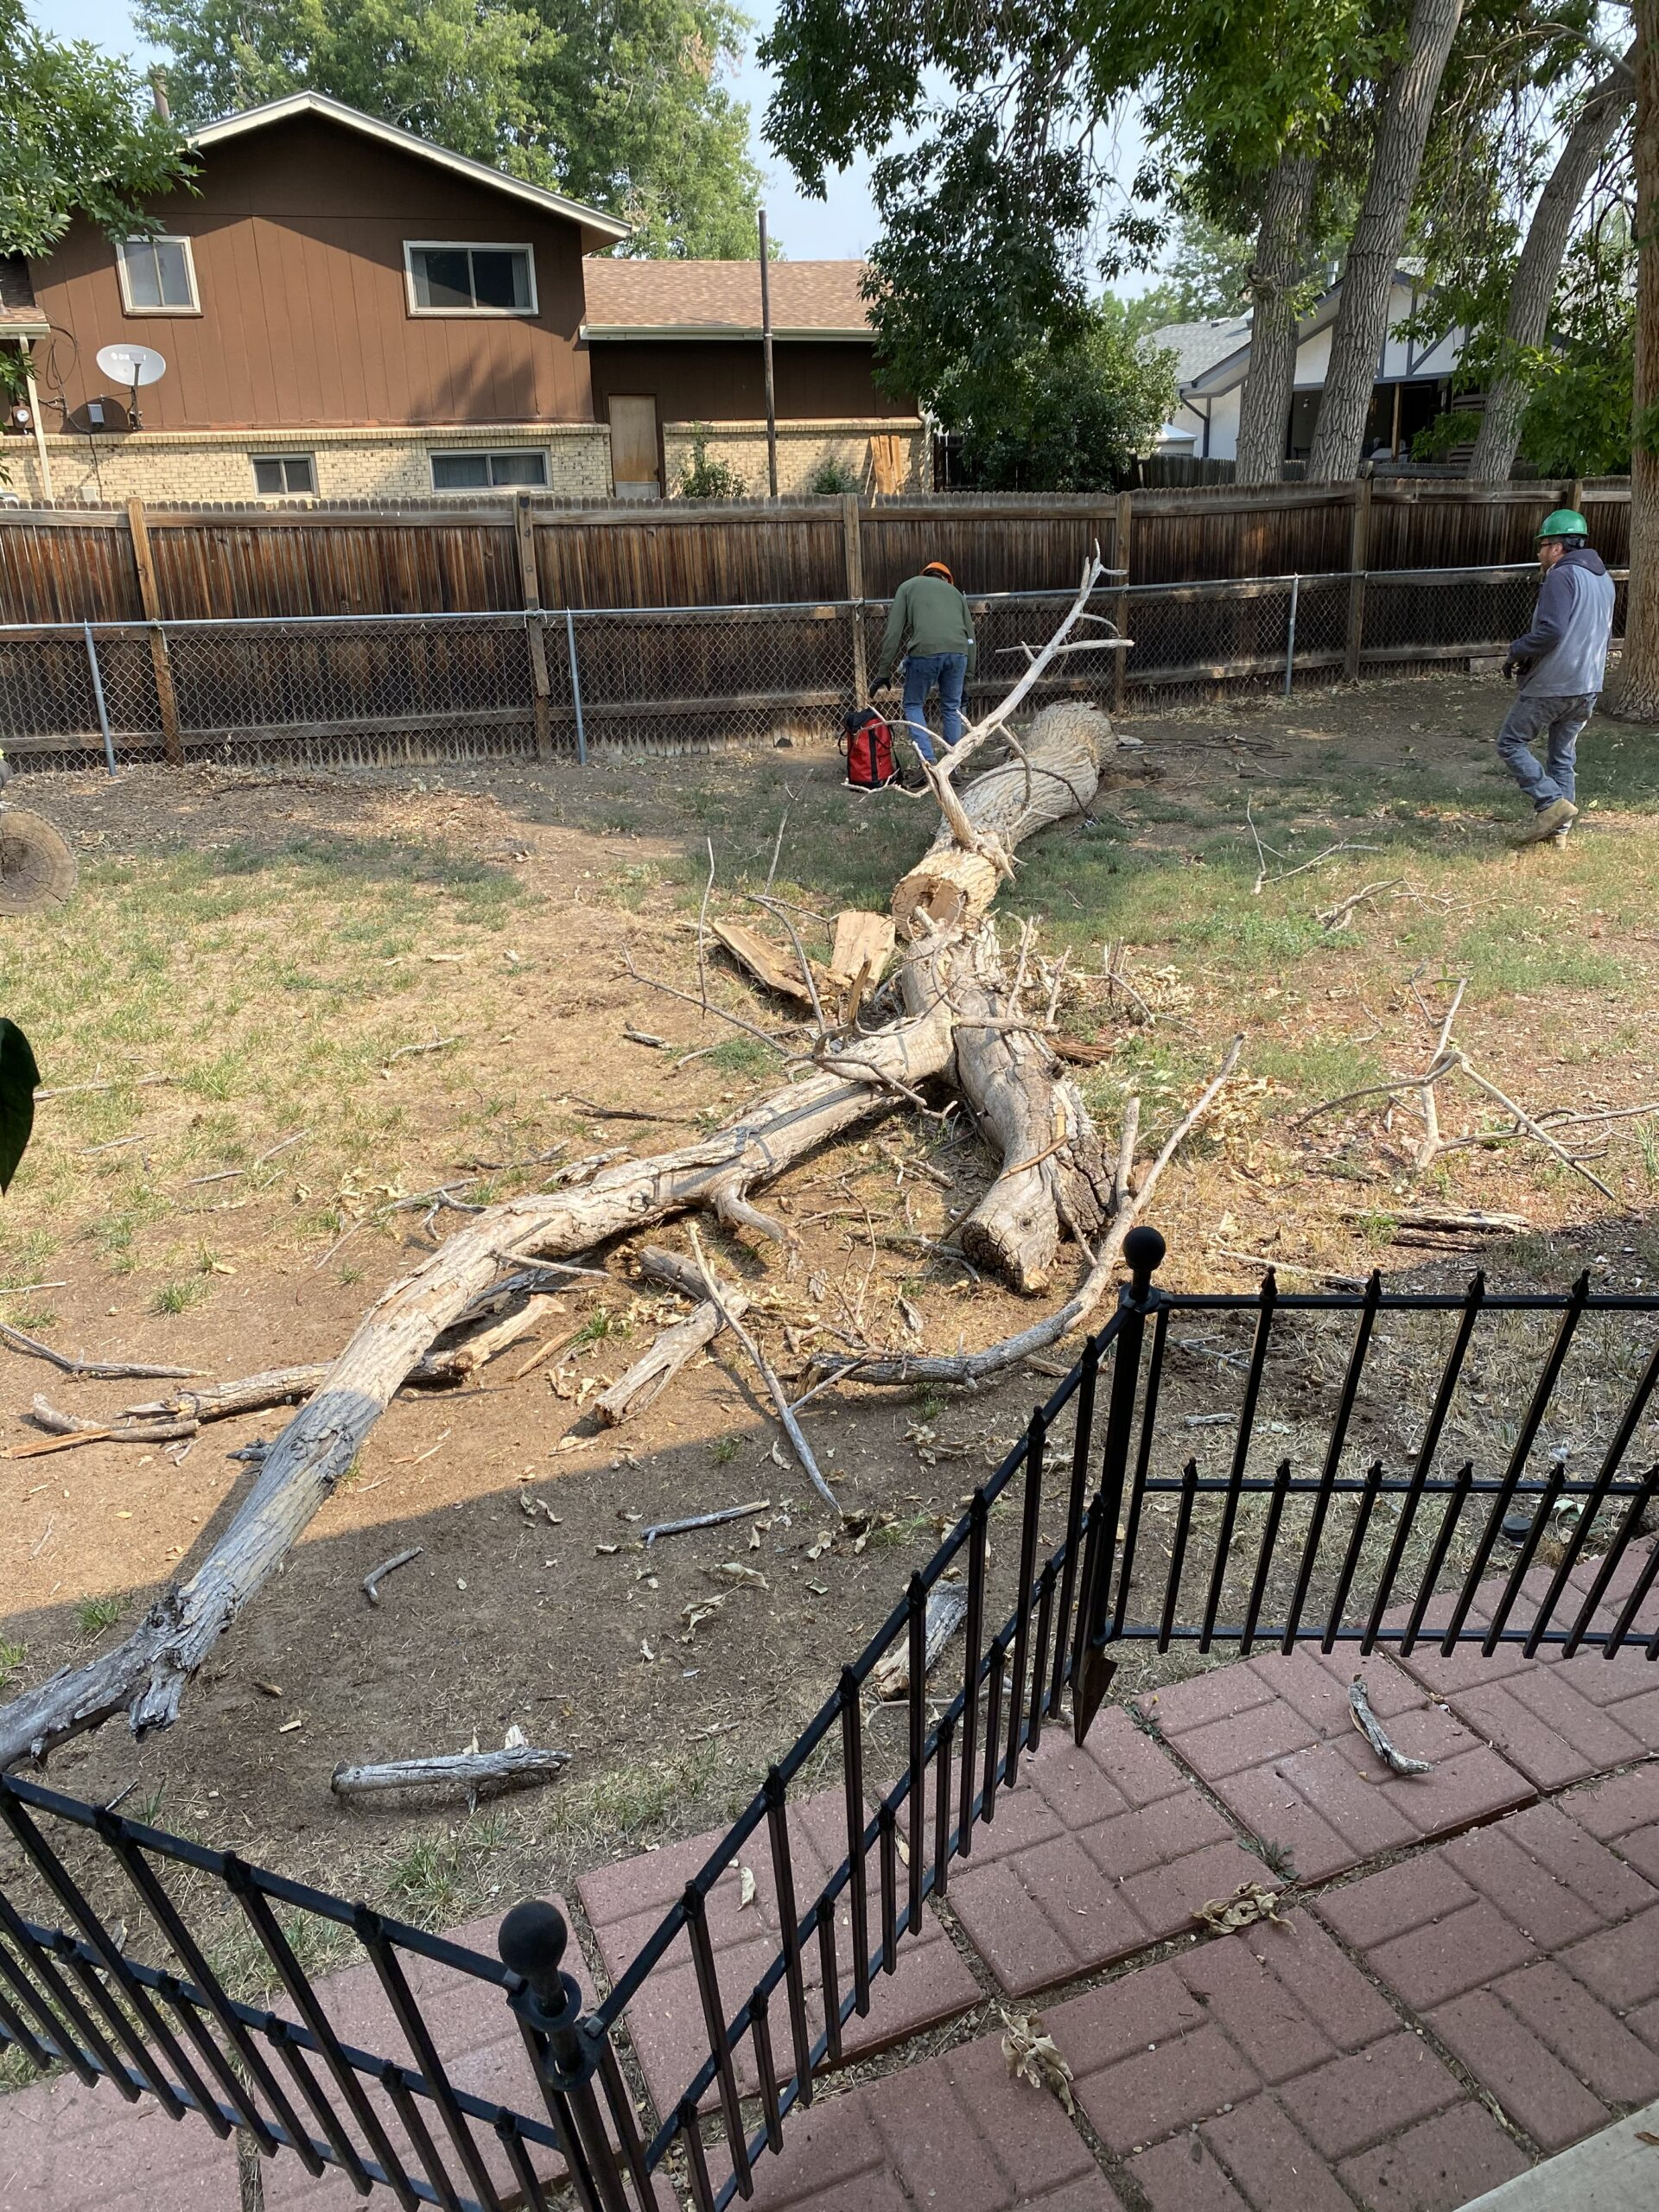 Termites had eaten the entire base of this rotten, dead tree. It was tall enough that it could have hit the back of our house or our neighbor's fence if it fell down because of winds and snow.